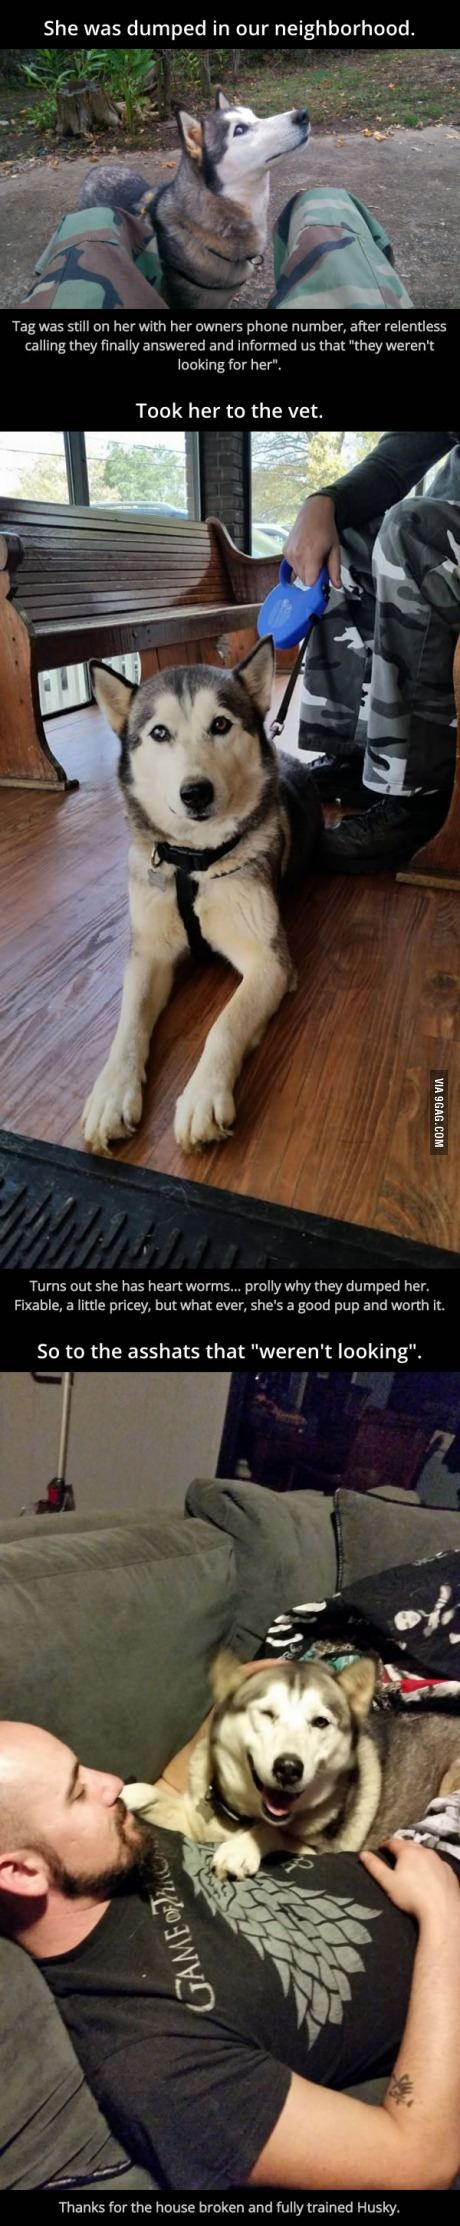 I love this story... the bit at the end is pretty funny too. Rescued Husky.